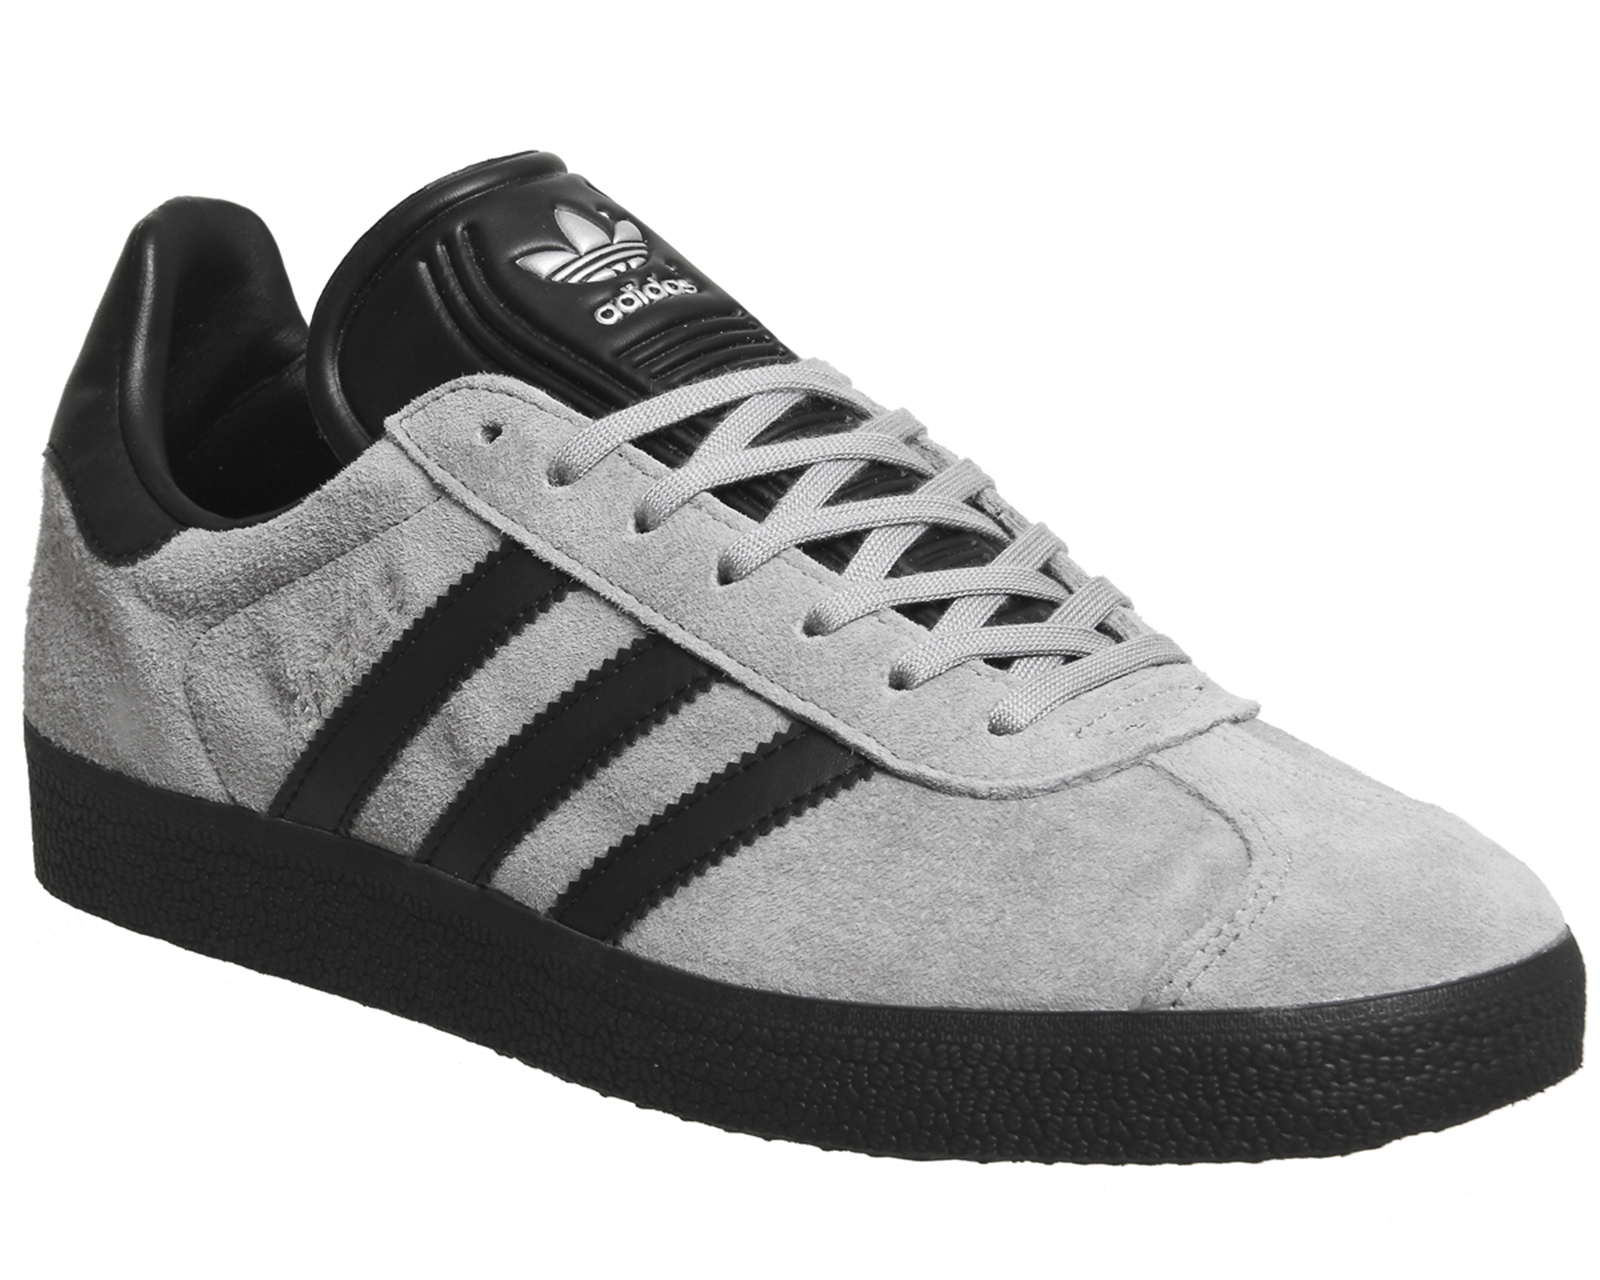 536ff7c4496 Sentinel Mens Adidas Gazelle Trainers Grey Black Exclusive Trainers Shoes